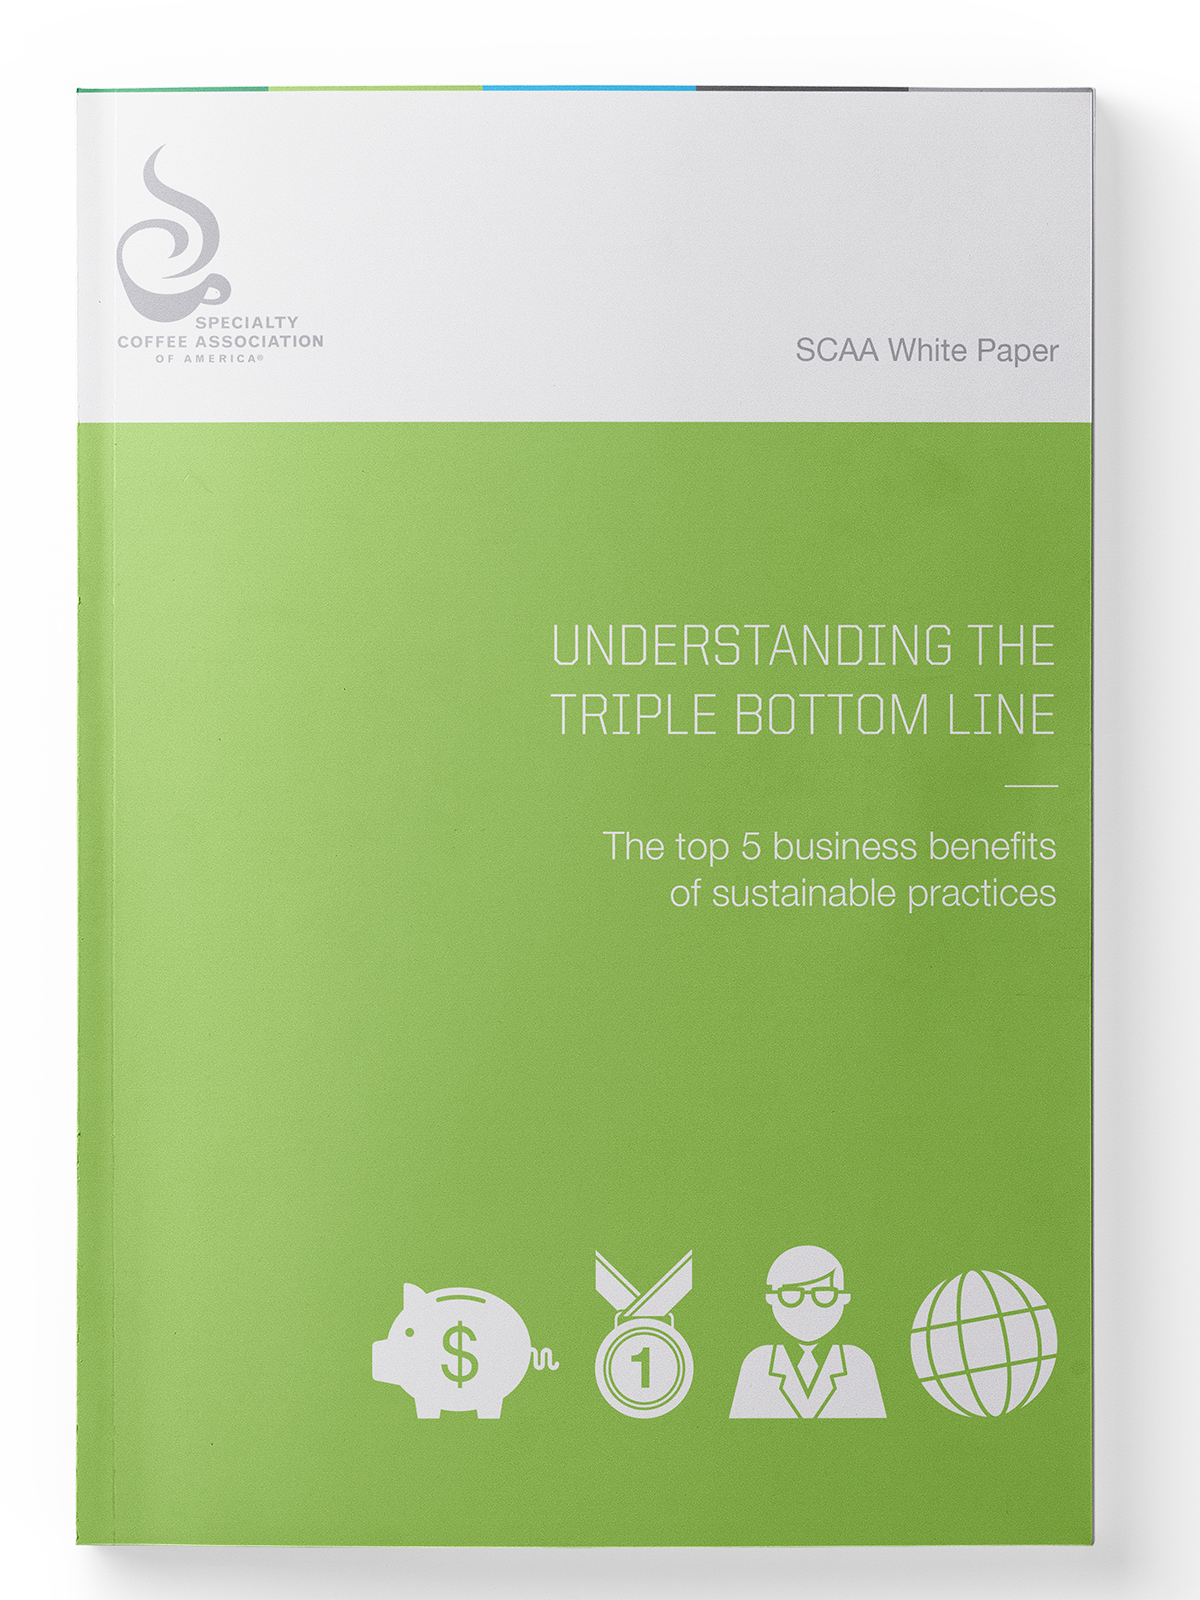 Understanding the Triple Bottom Line    The Top 5 Business Benefits of Sustainable Practices    This free paper explores the top tangible advantages of employing a sustainable program in your business, including profits, employee loyalty, brand benefits and more by looking at practices that draw from the Triple Bottom Line: People, Profits & Planet.   Download